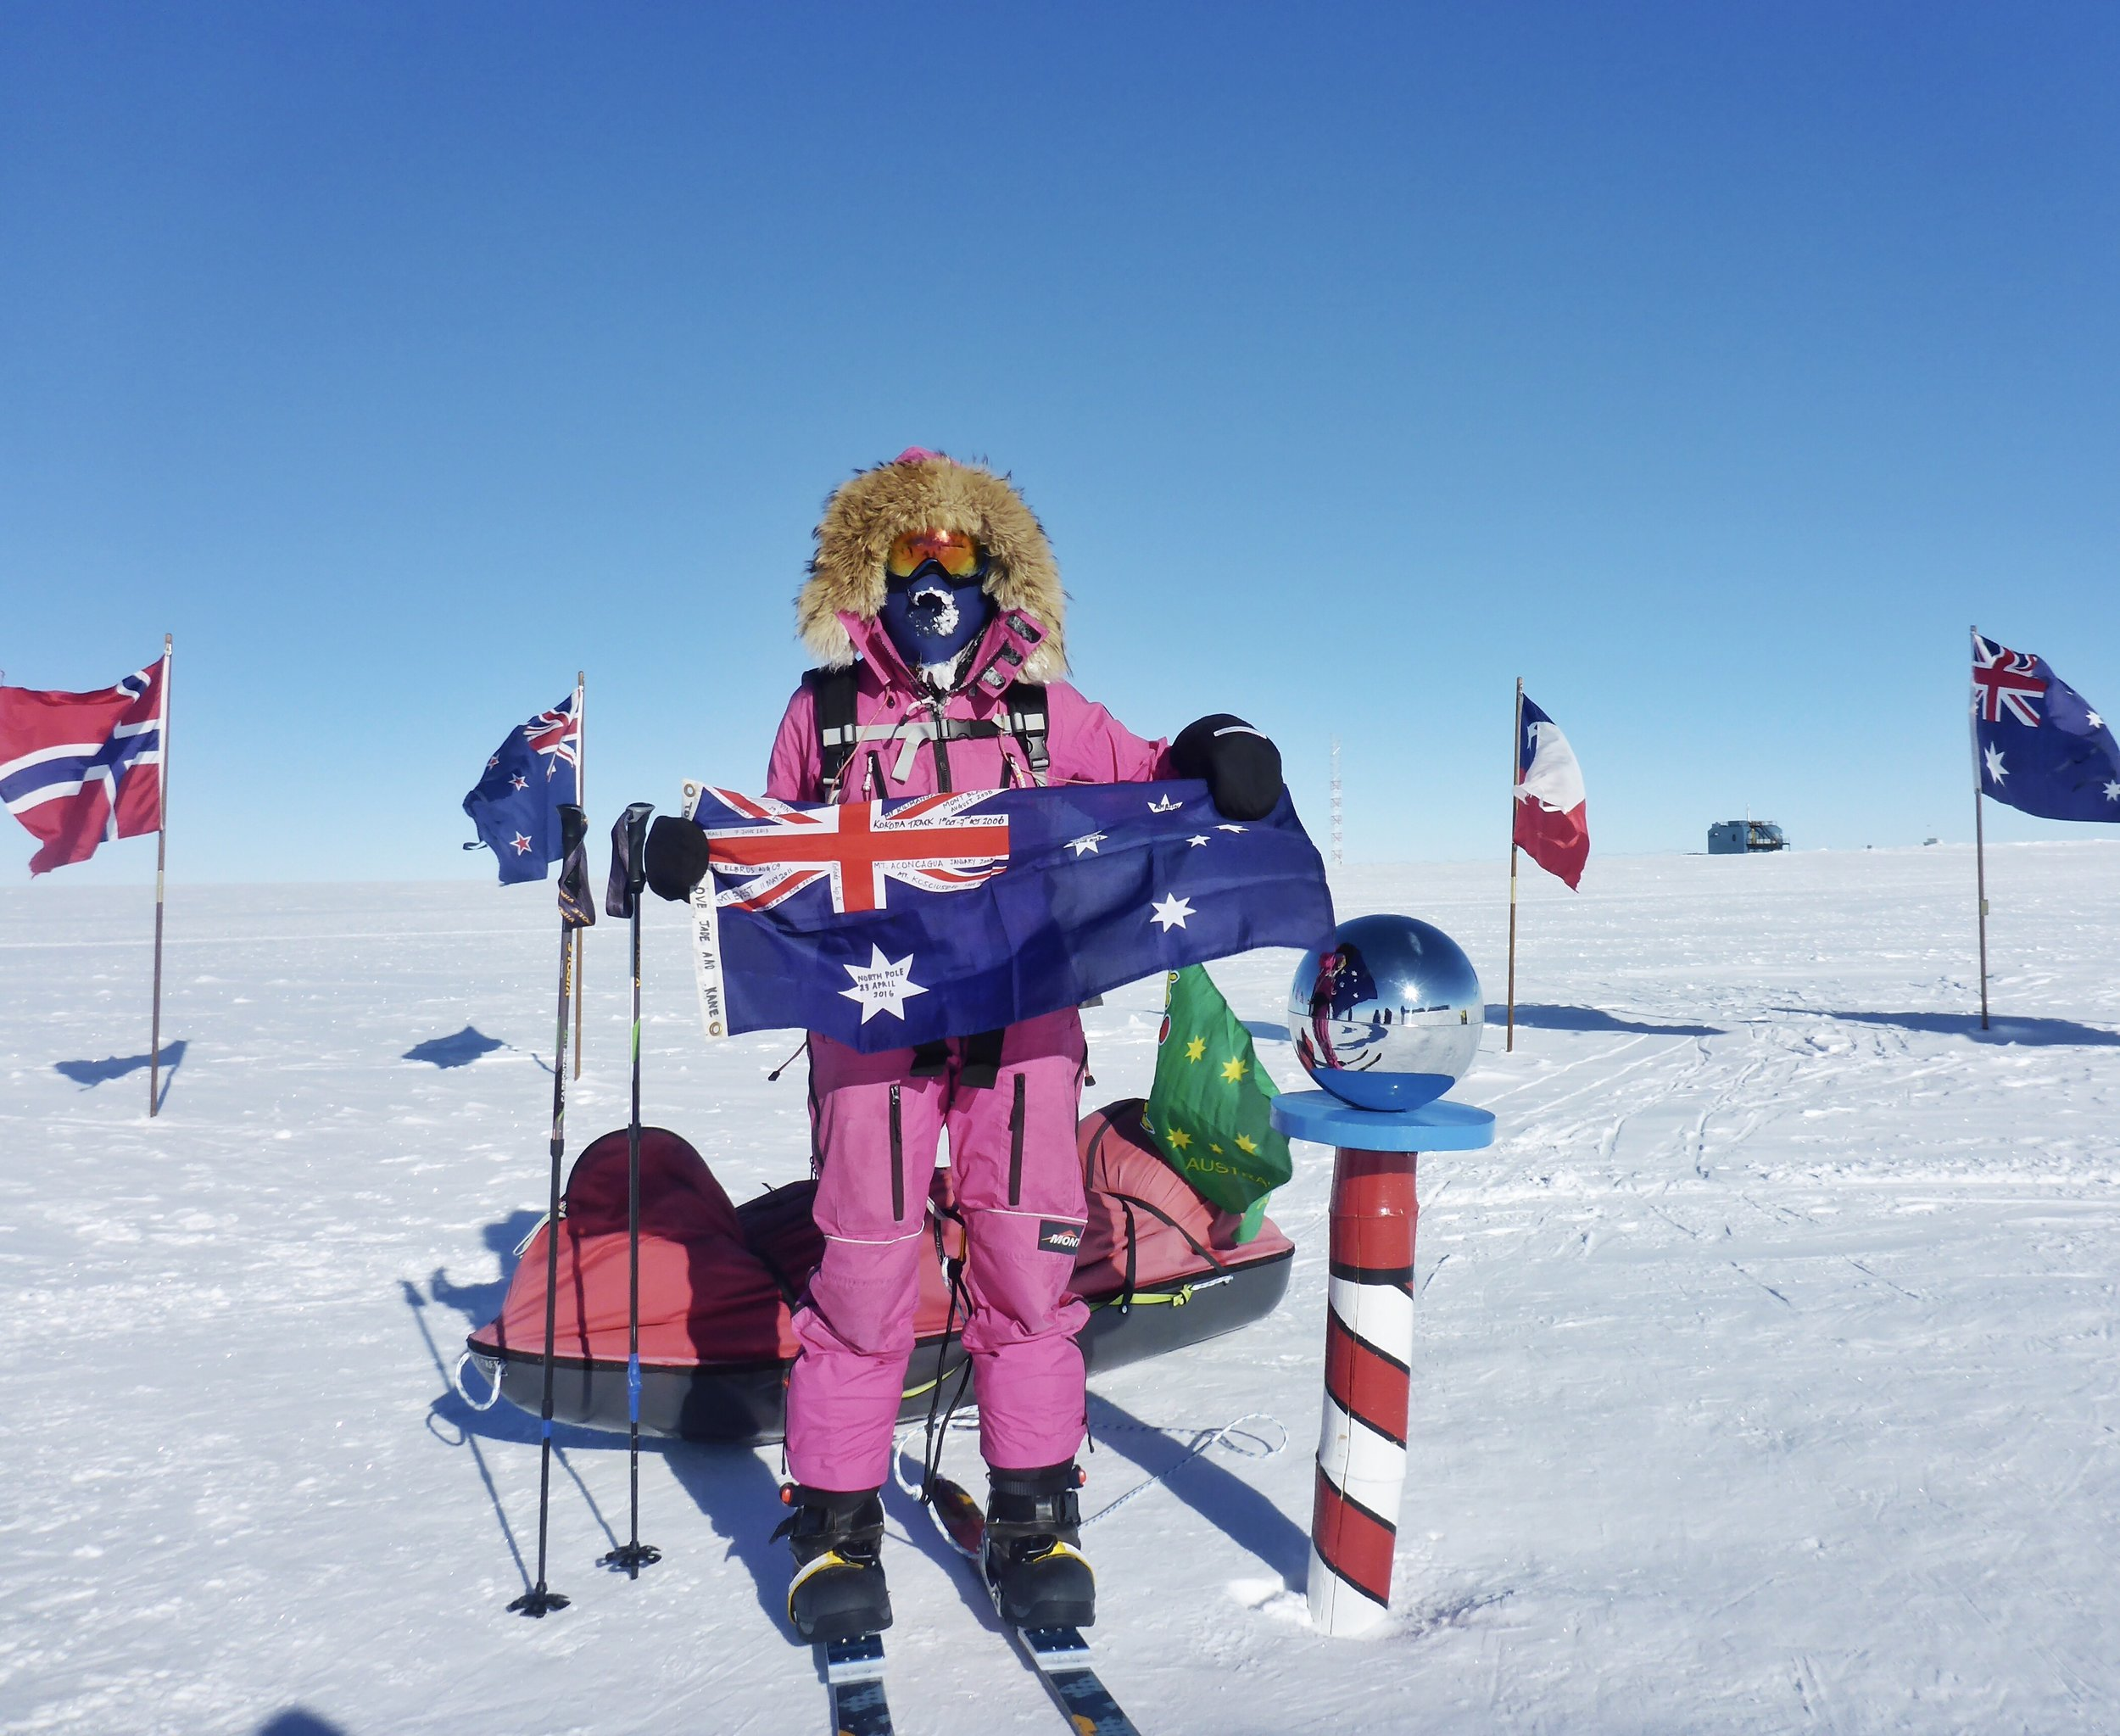 Arrival at the South Pole after 37 days of skiing from the coast